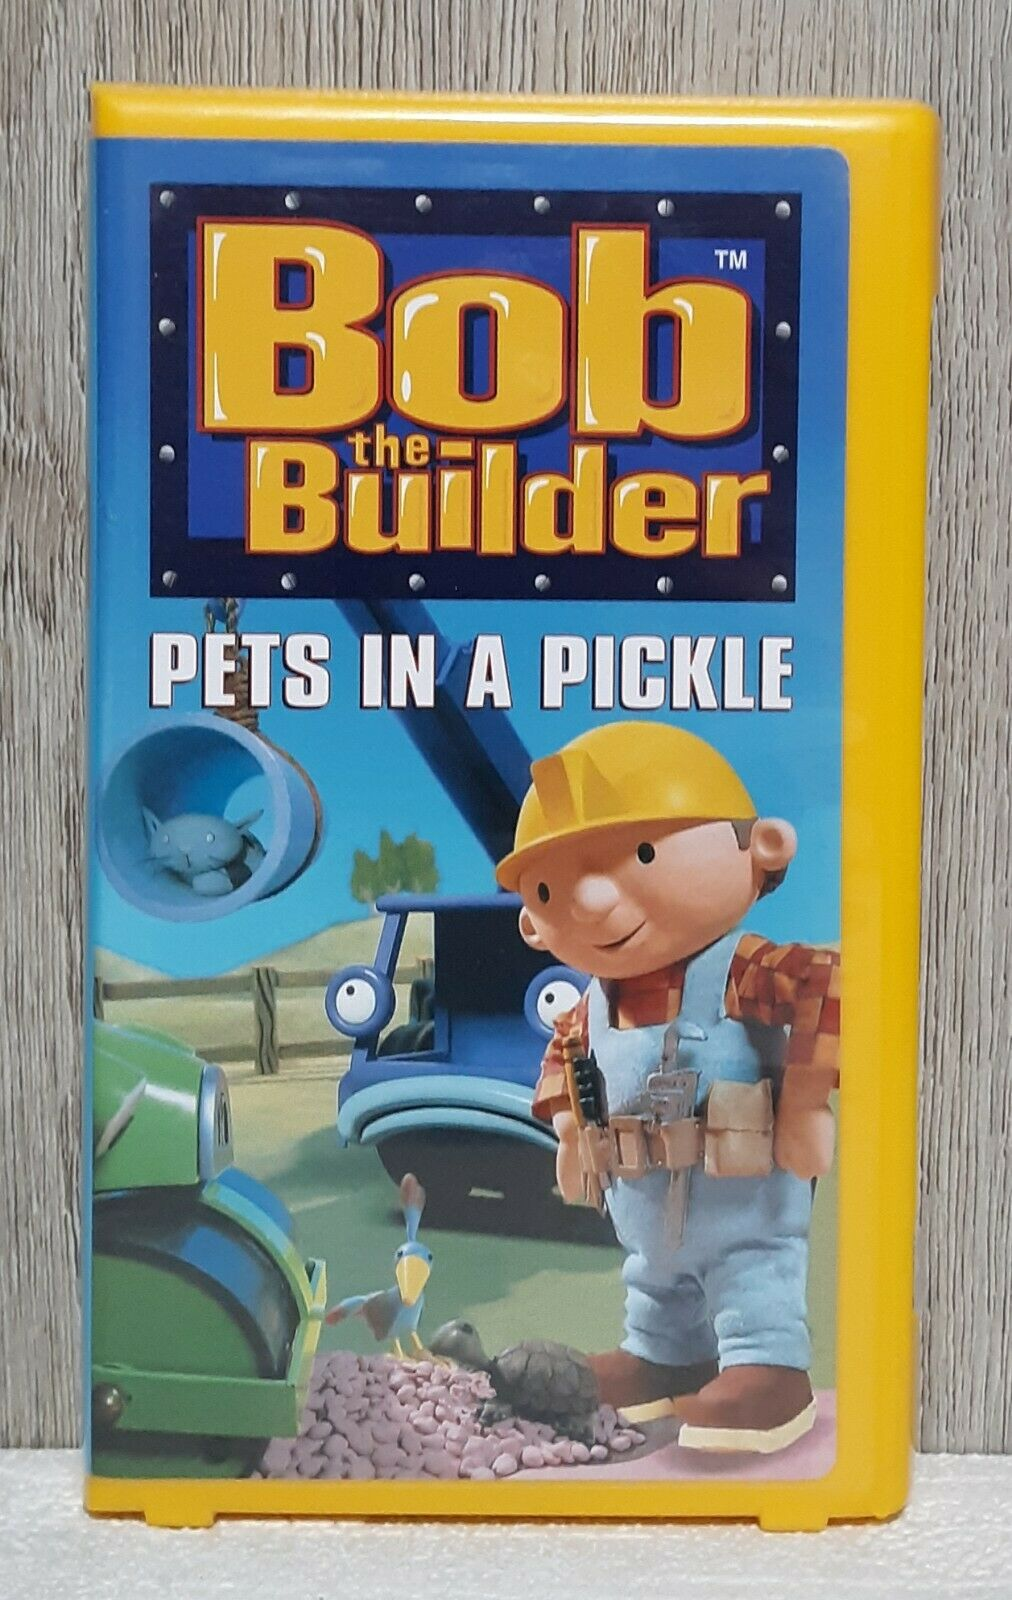 Bob the Builder: Pets in a Pickle (2001 VHS)